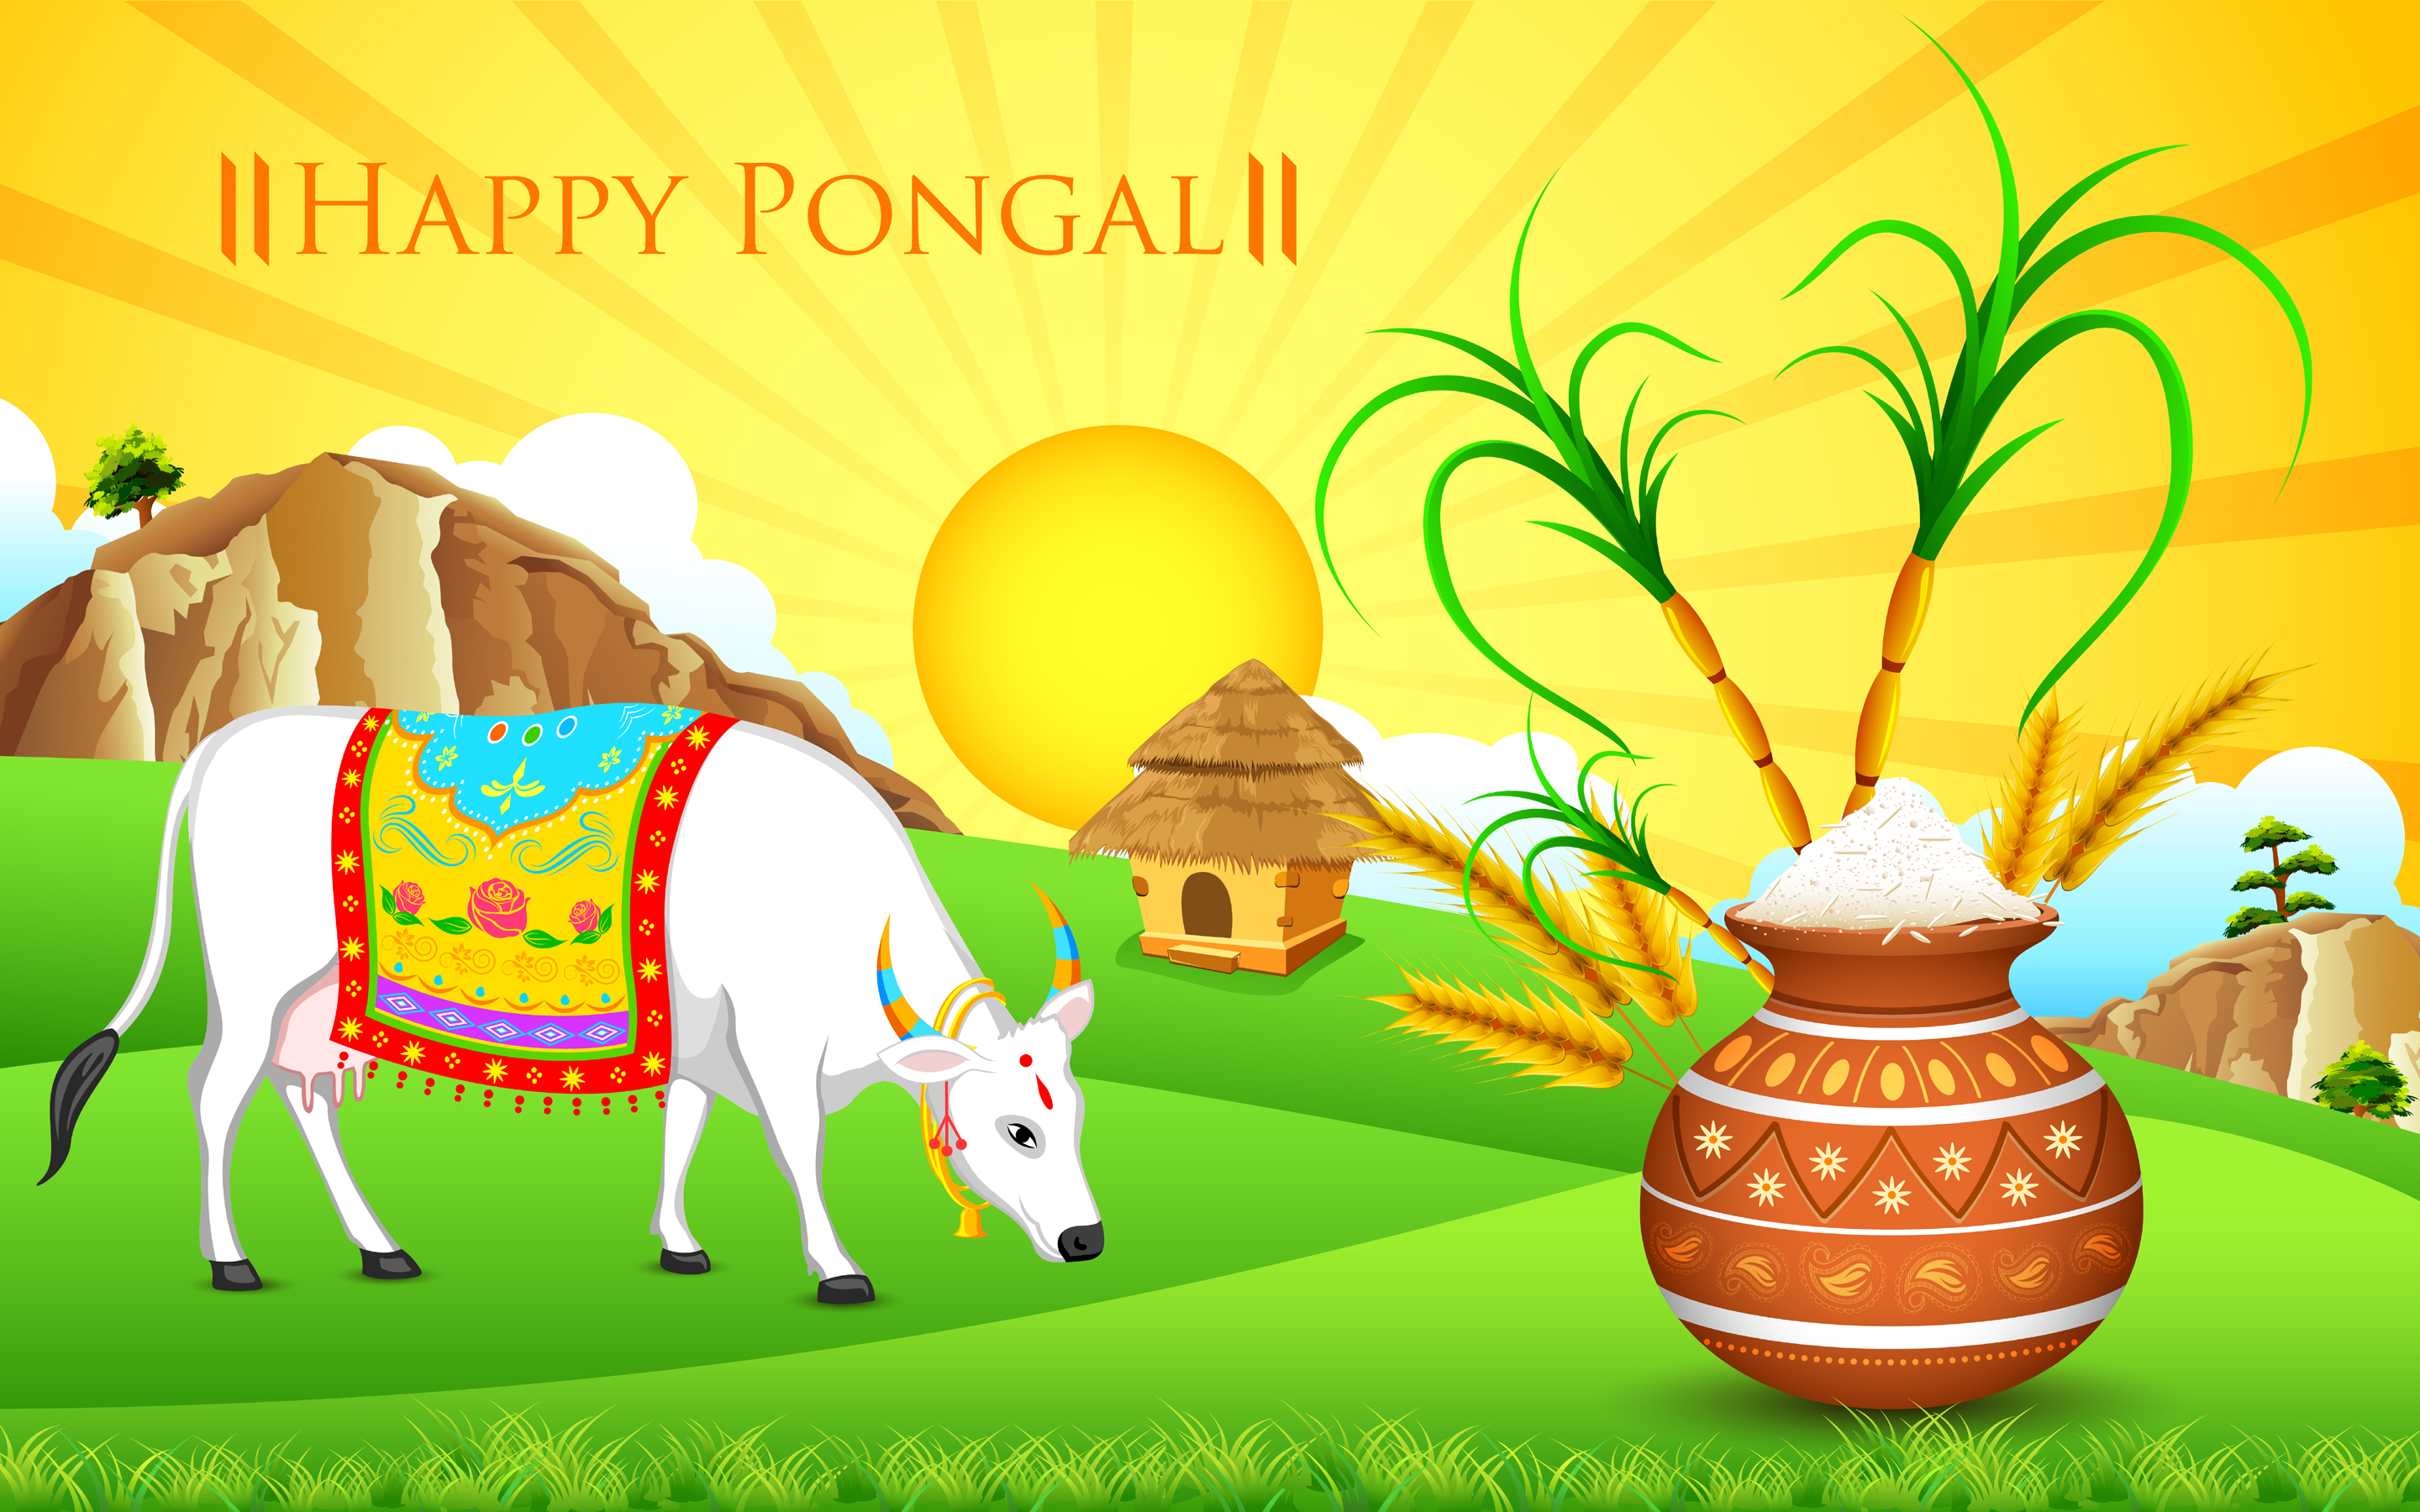 Happy Pongal 2018 HD Wallpaper